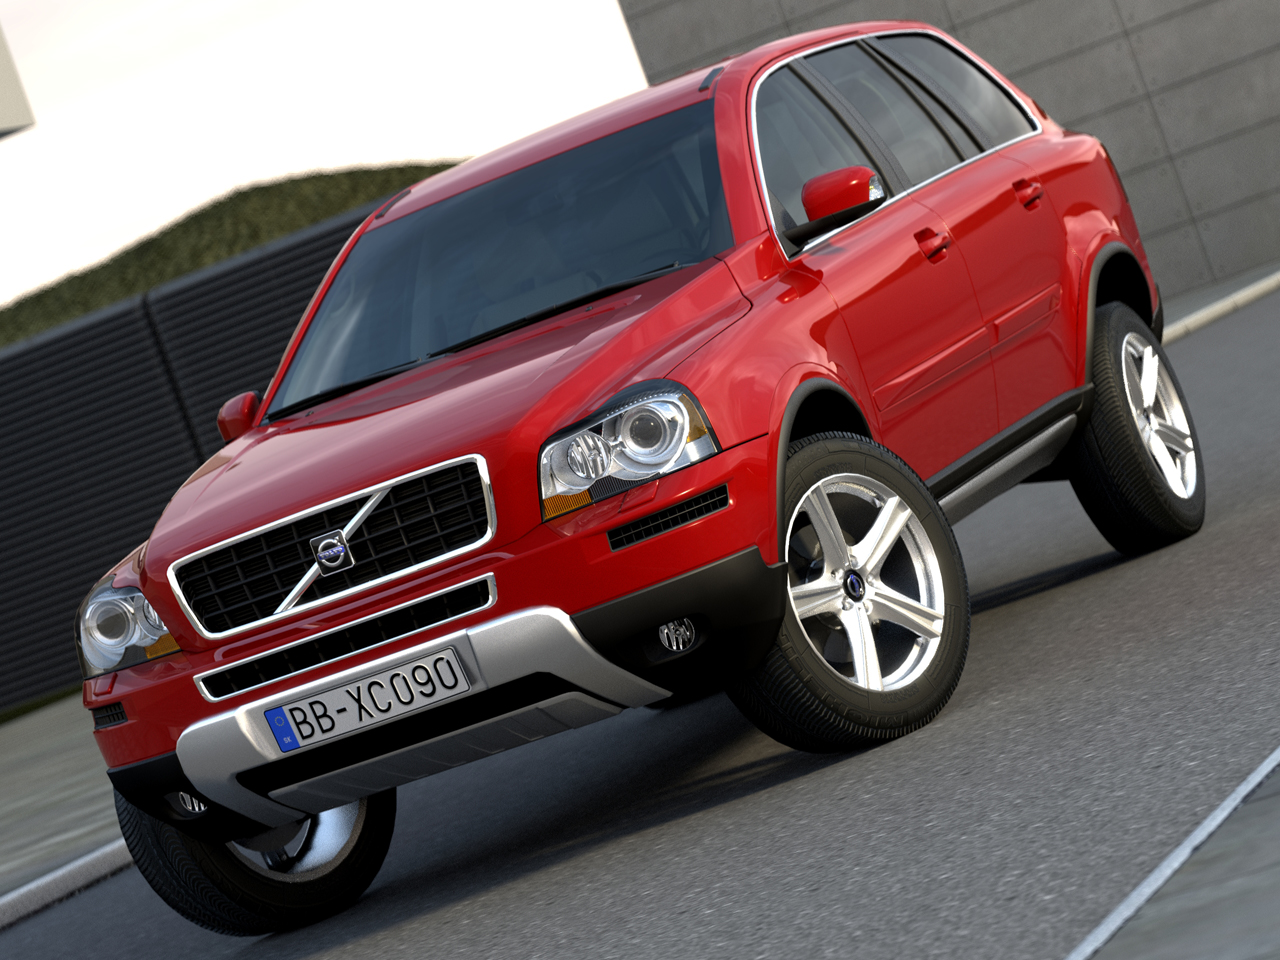 suv xc90 r design (2009) 3d model 3ds max fbx c4d obj 84589